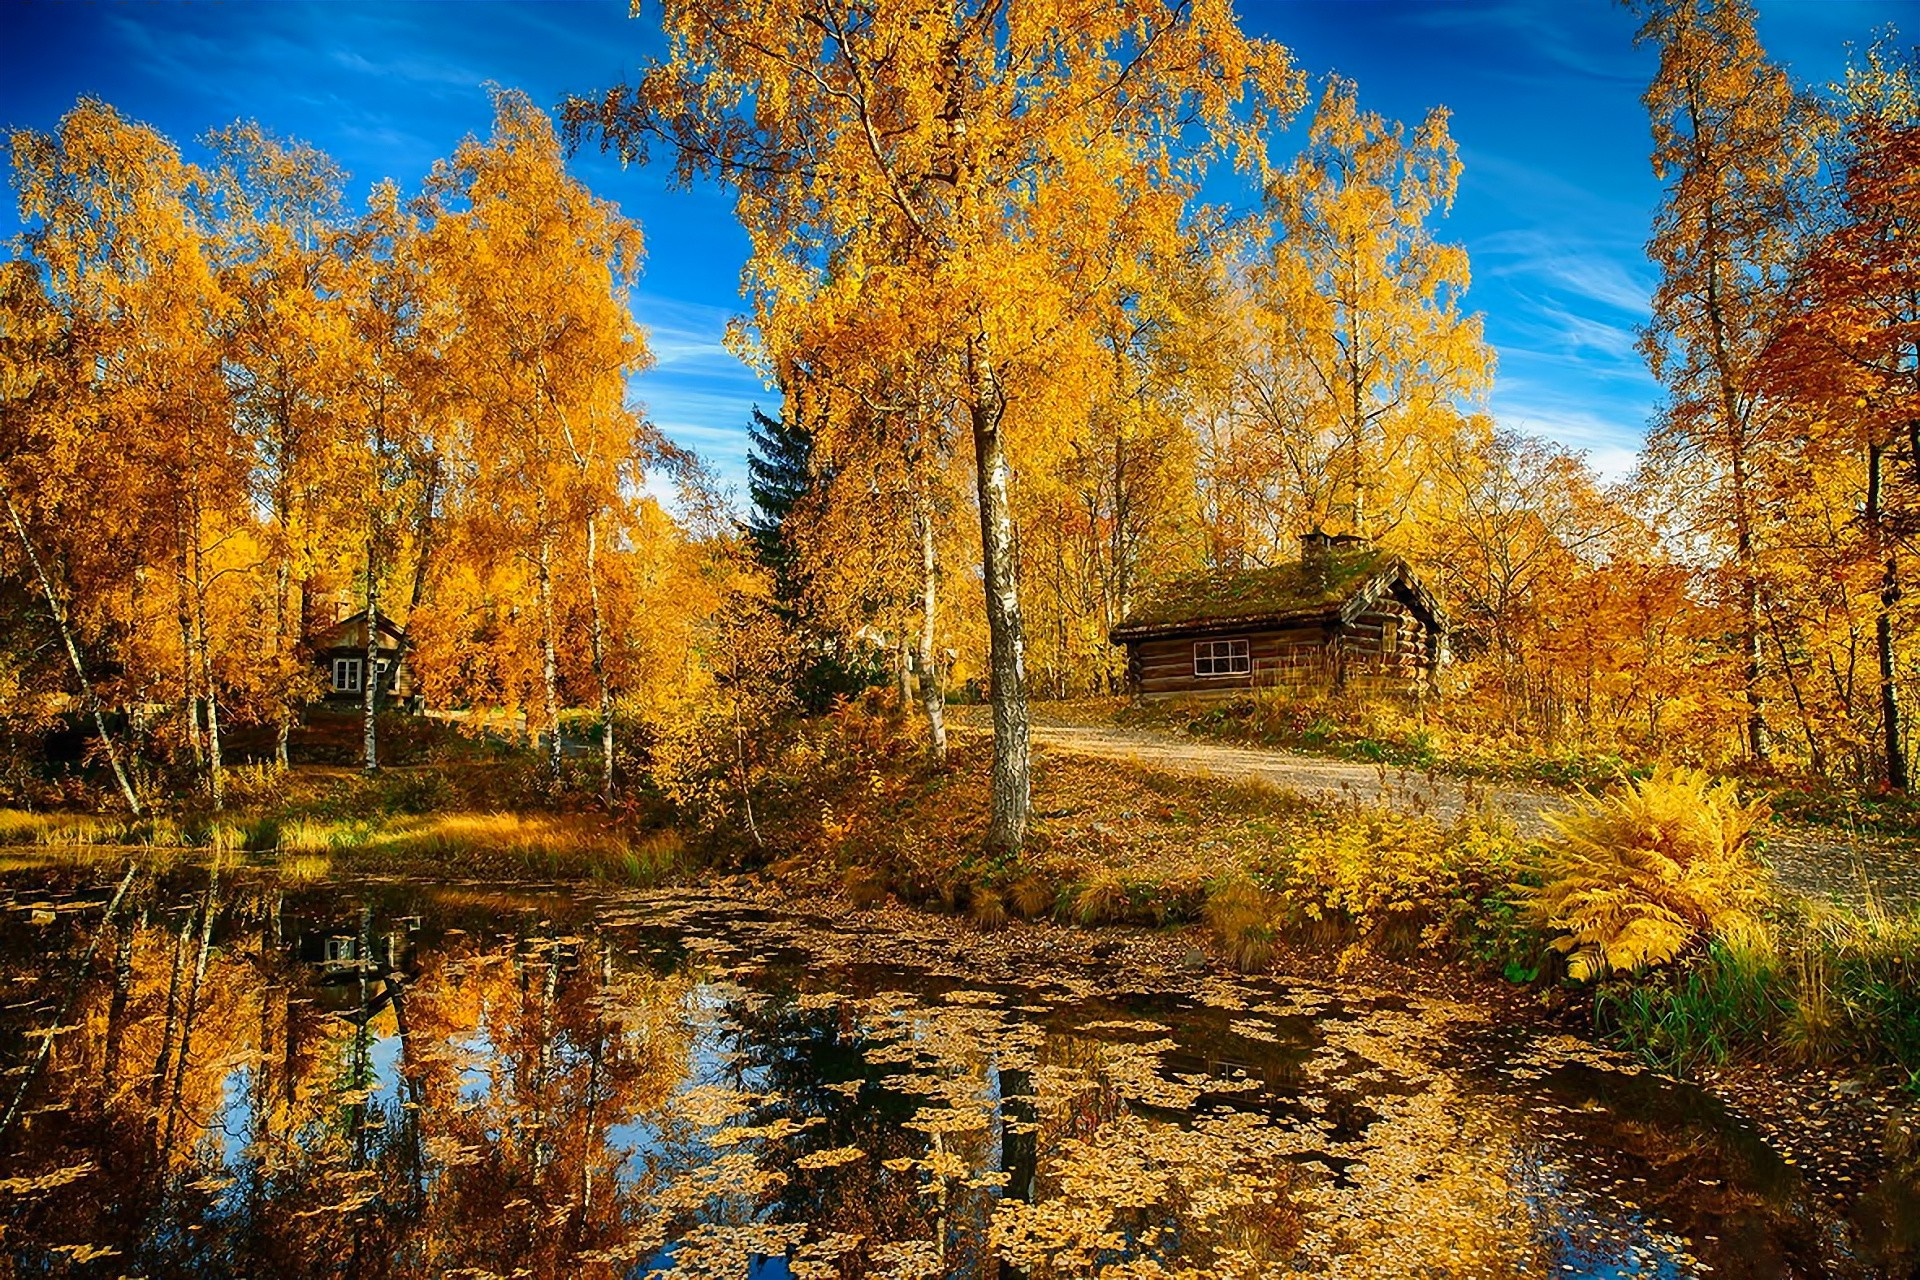 Lakes: Nature Lake Road Autumn Trees House Landscape Norway ...